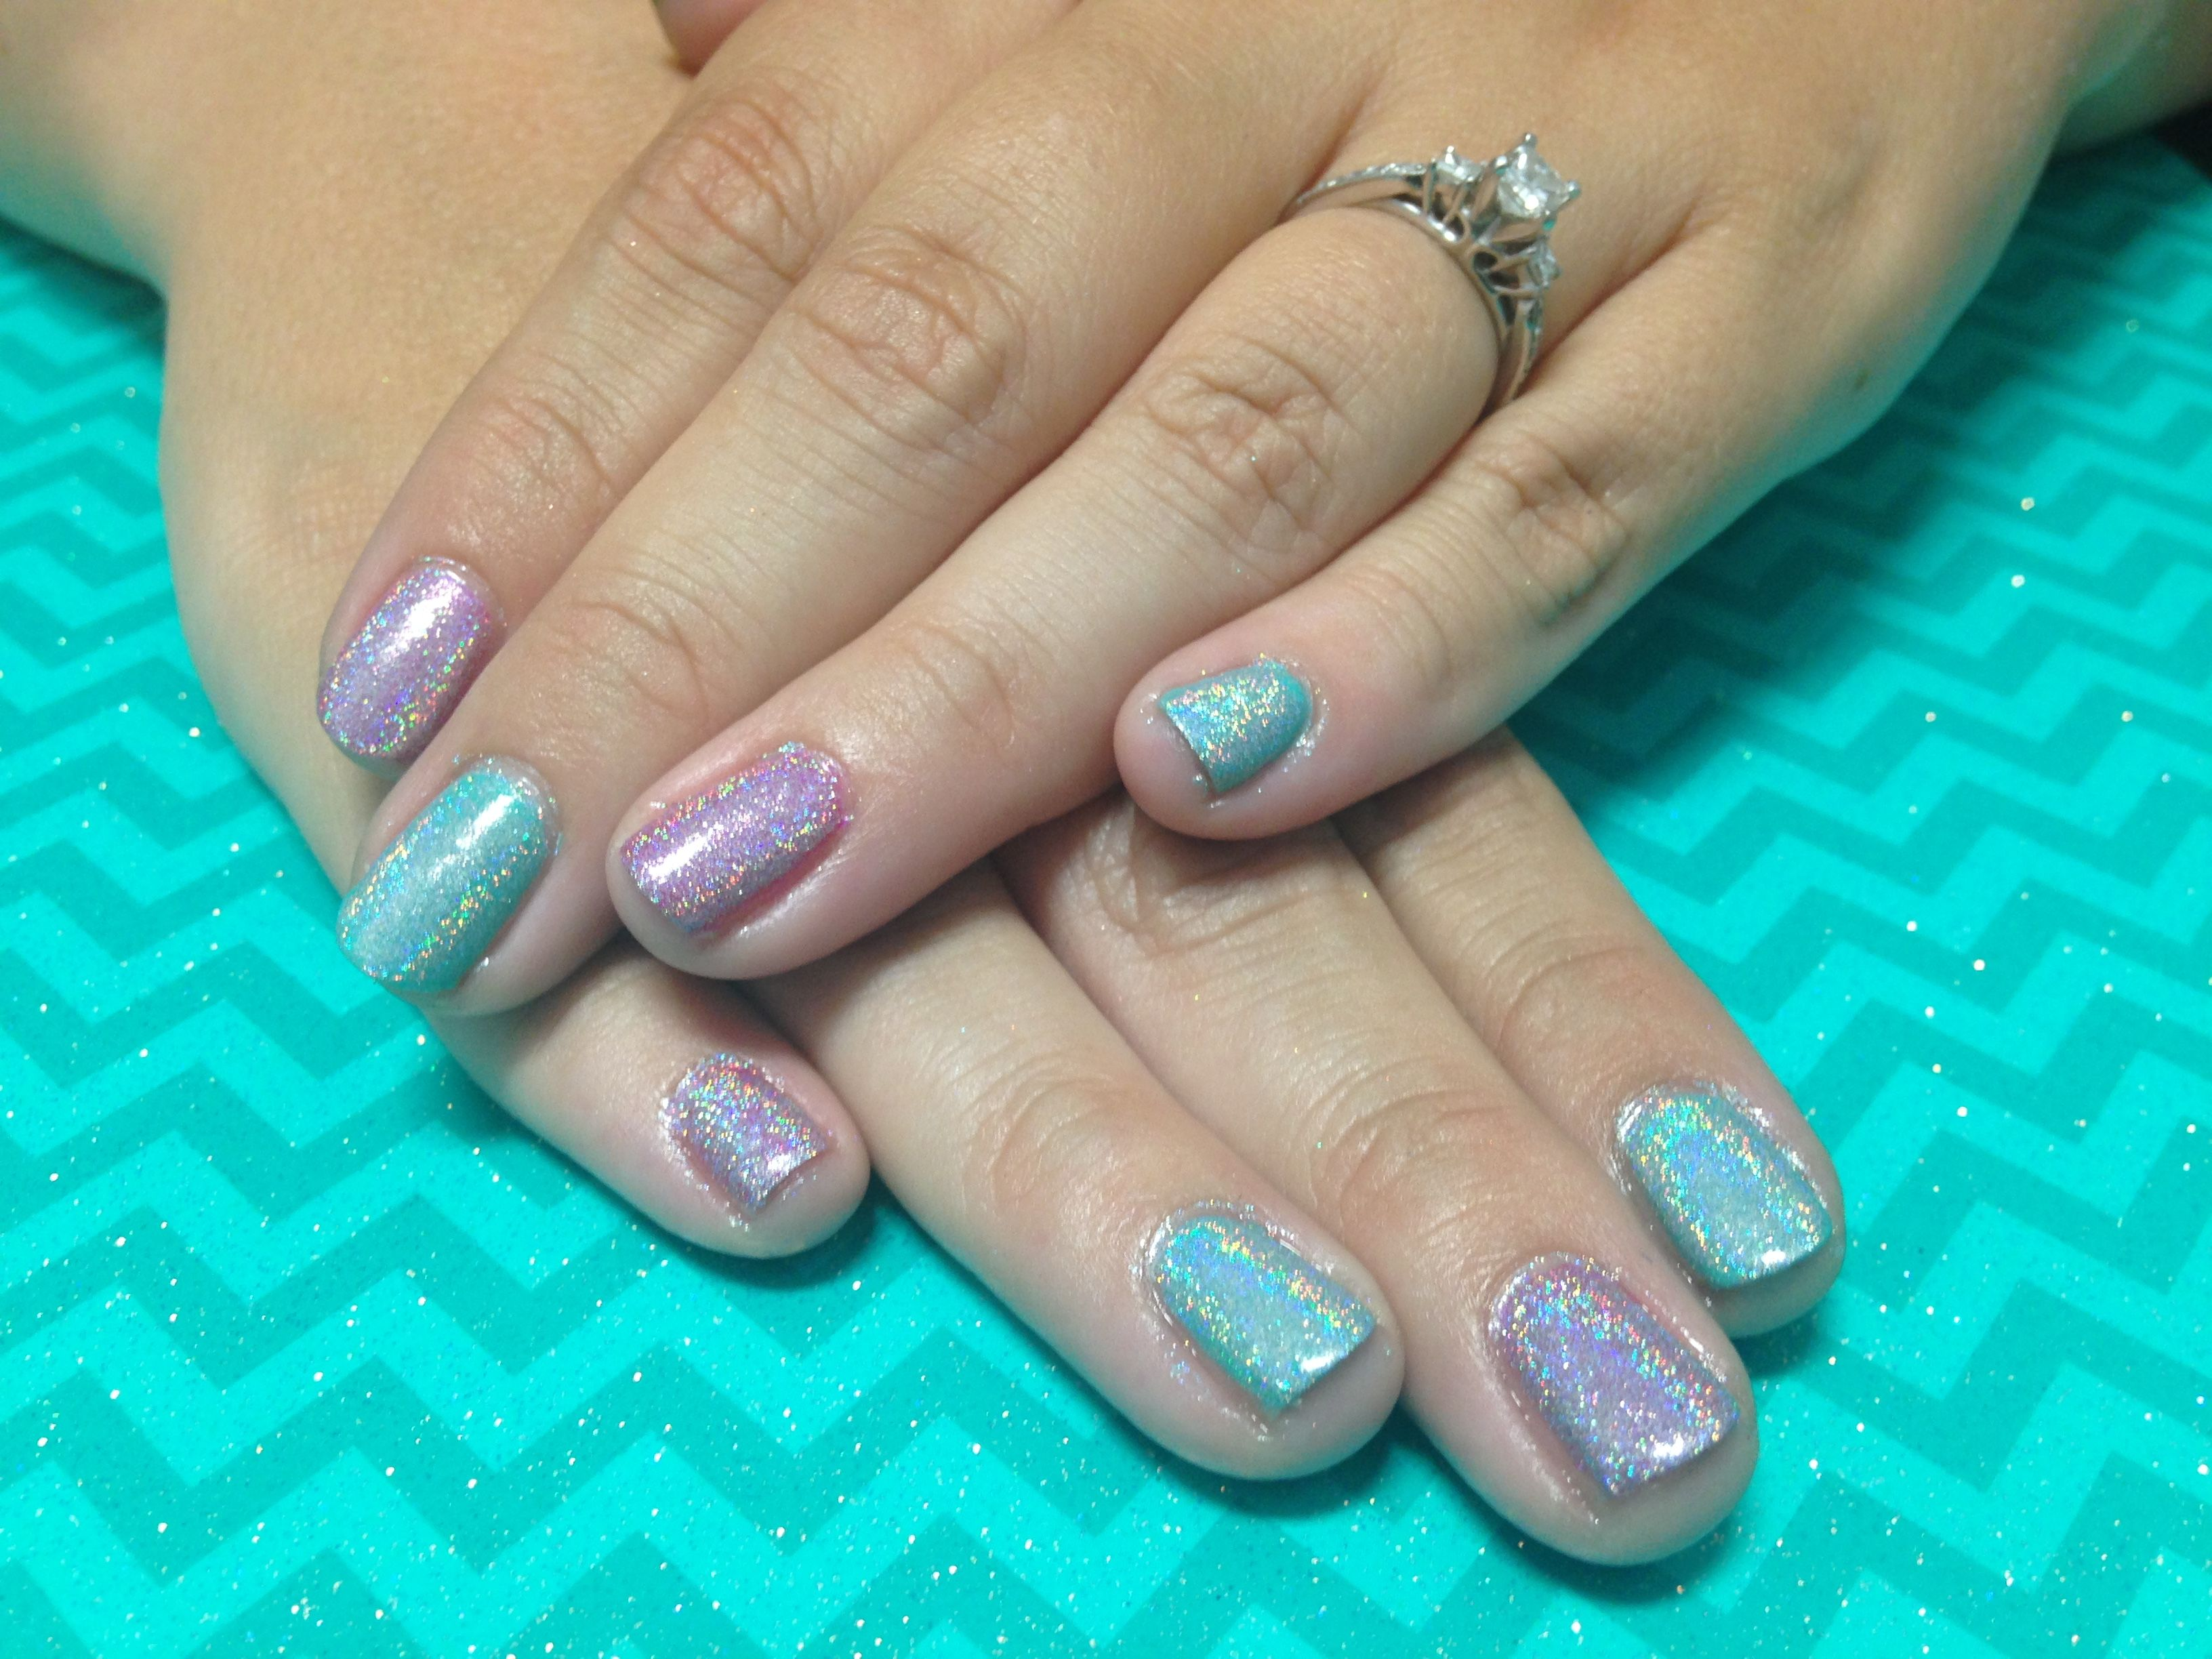 Teal and pink unicorn shellac nails. | Nails by LYSA! | Pinterest ...